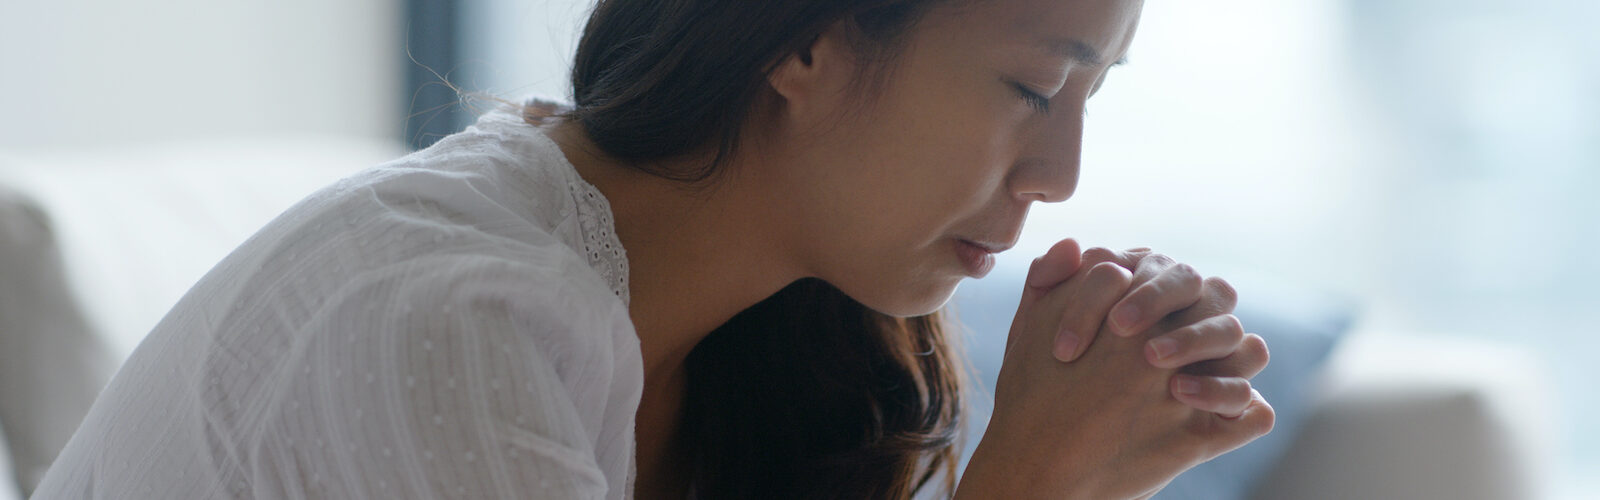 Woman praying to find strength in God